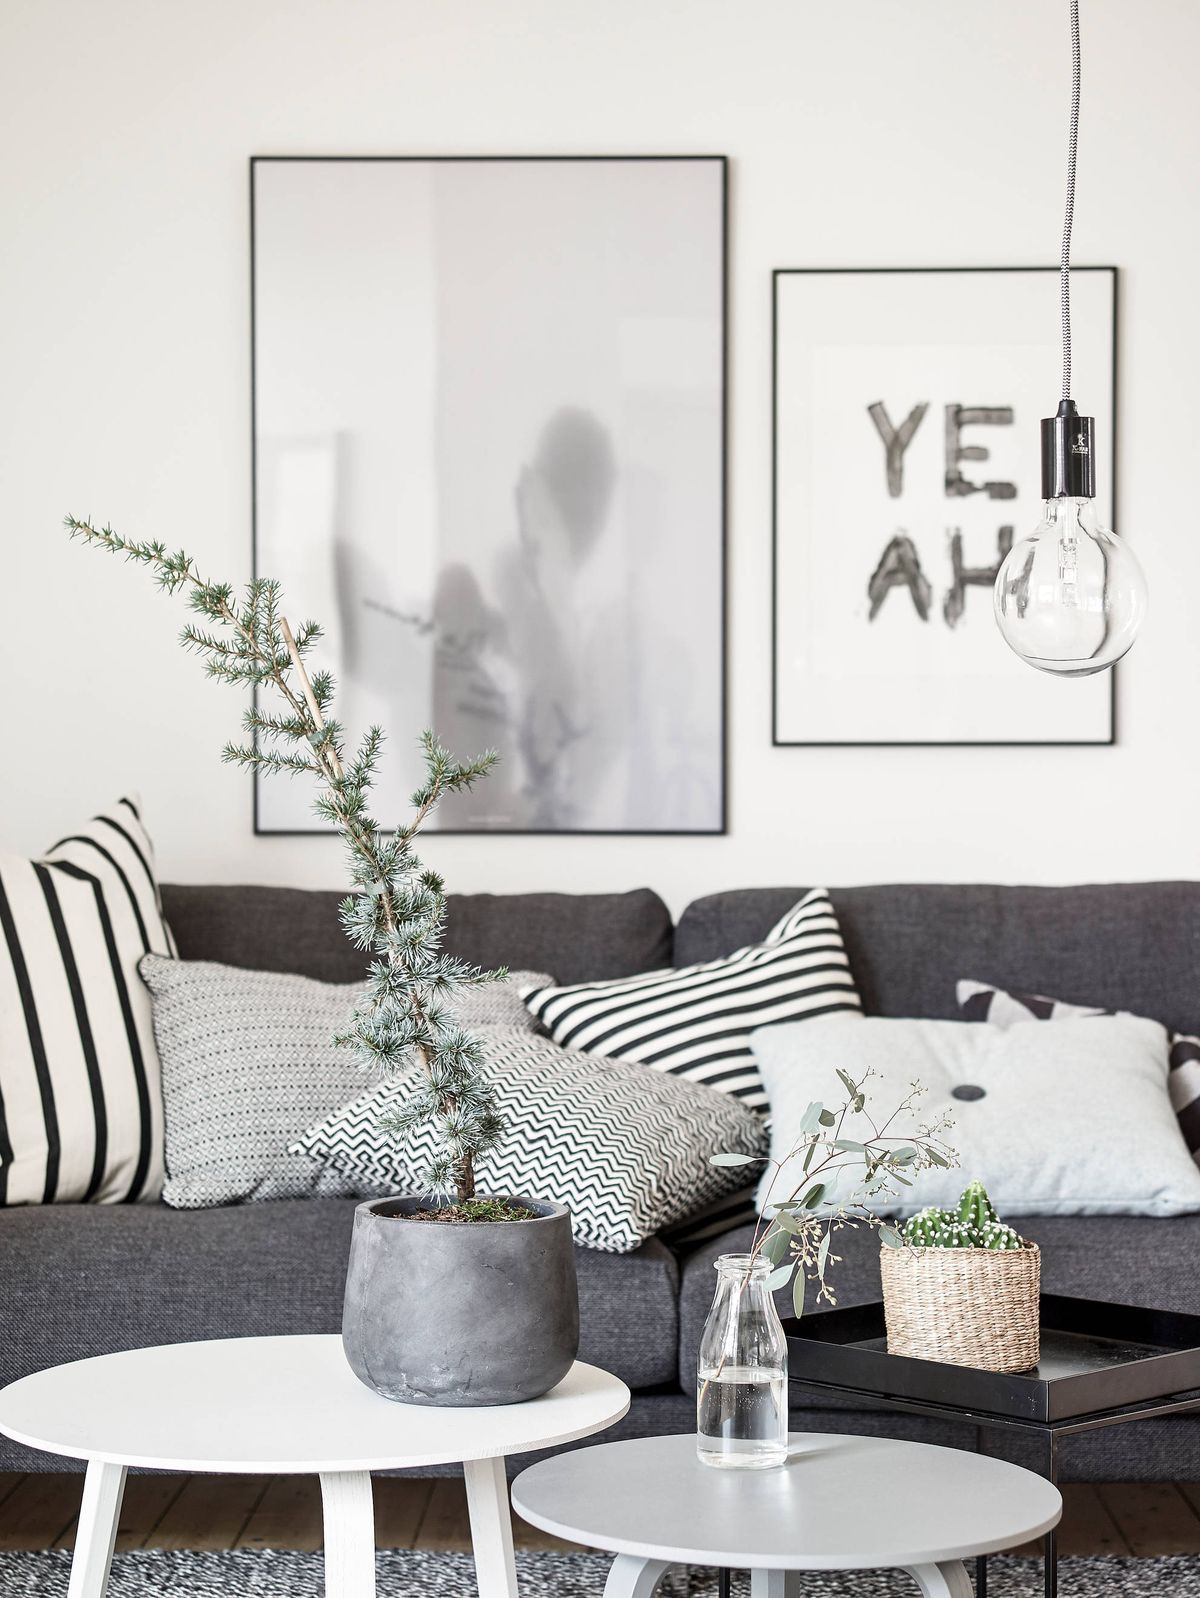 Decorate With Pillows For A Scandinavian Look